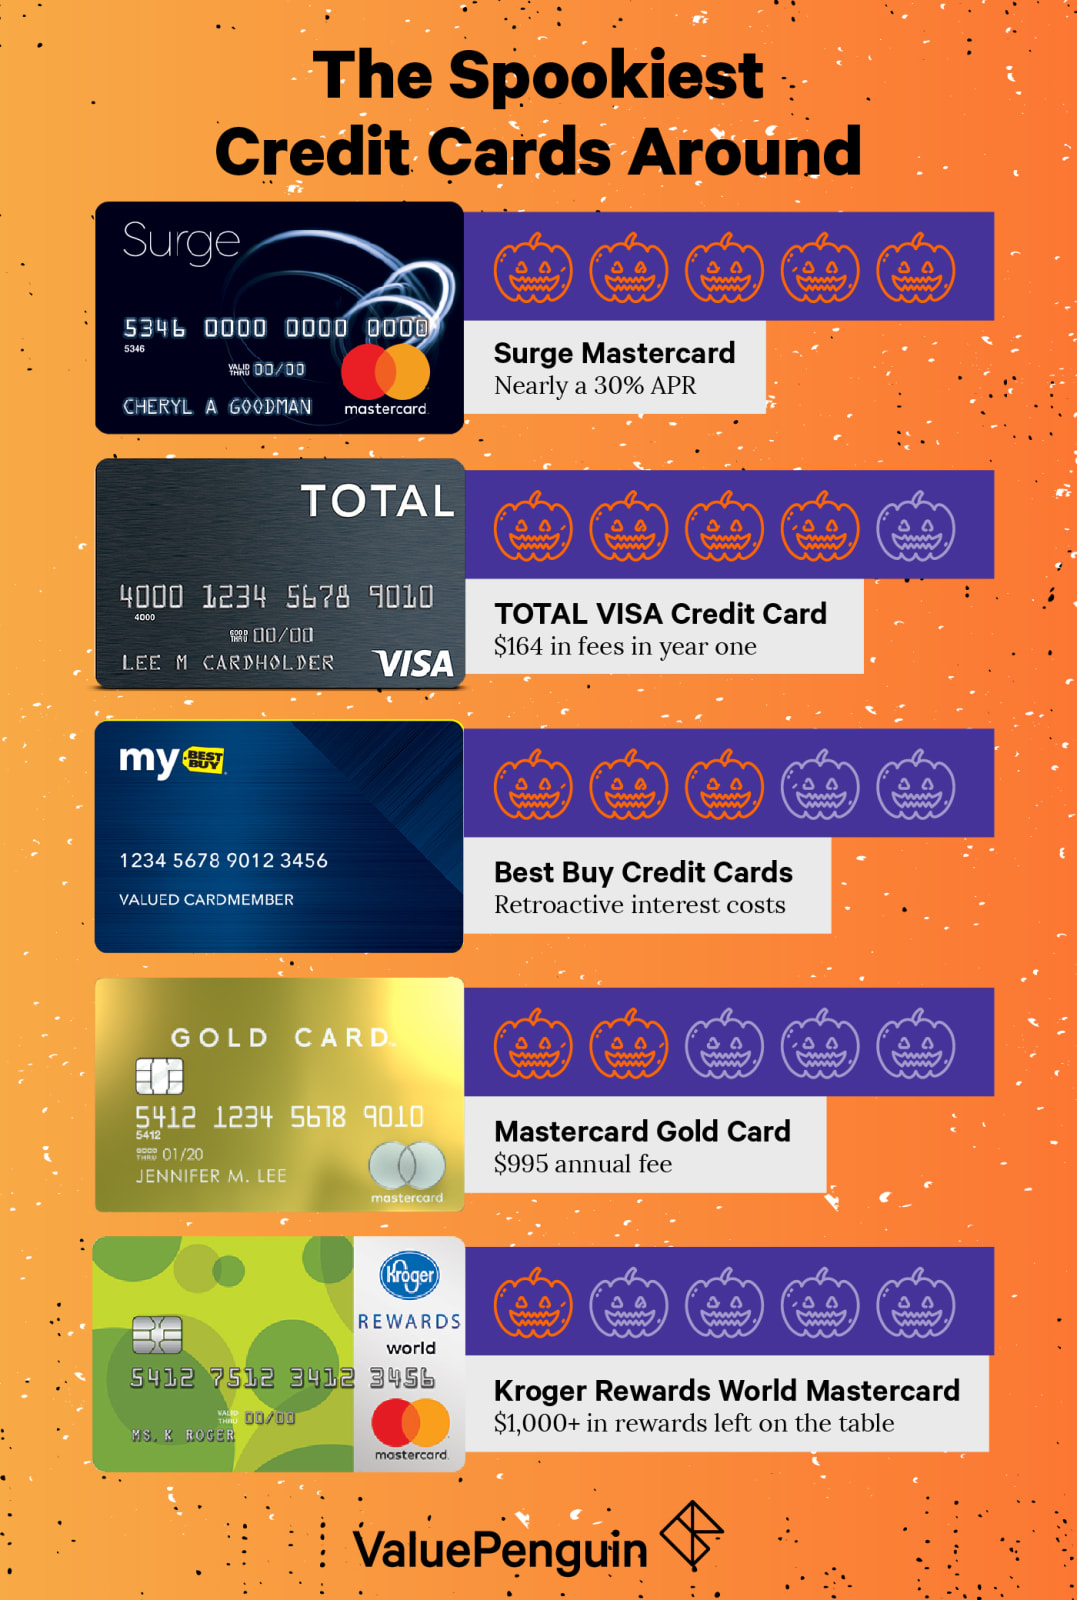 Spookiest Credit Cards of 2018